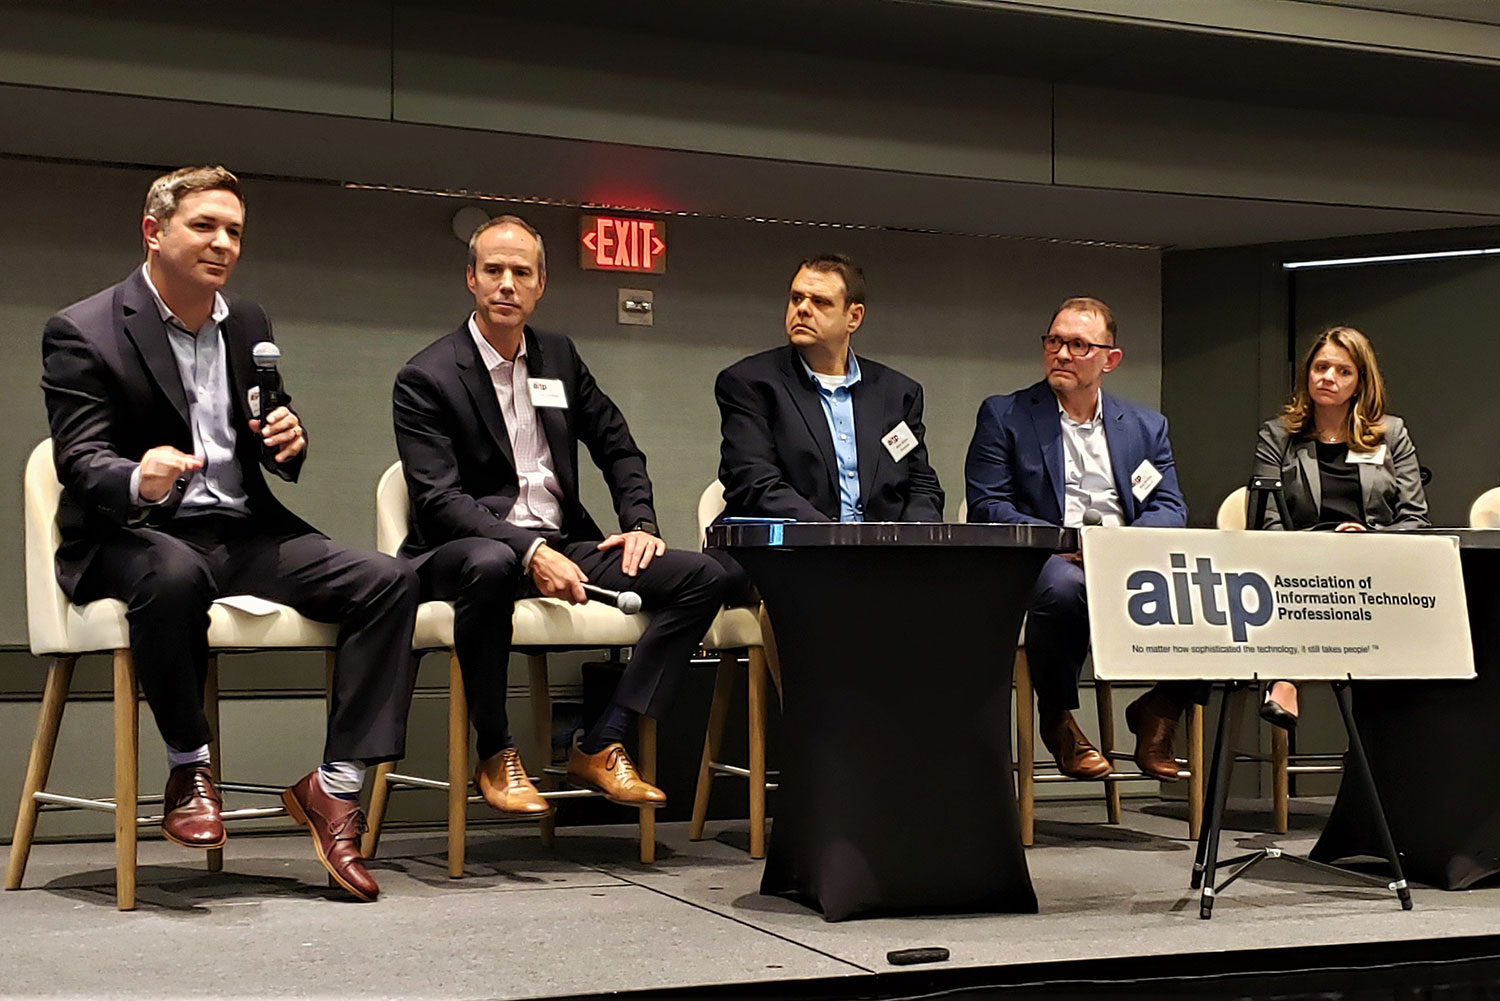 CIO presenting at panel of AITP